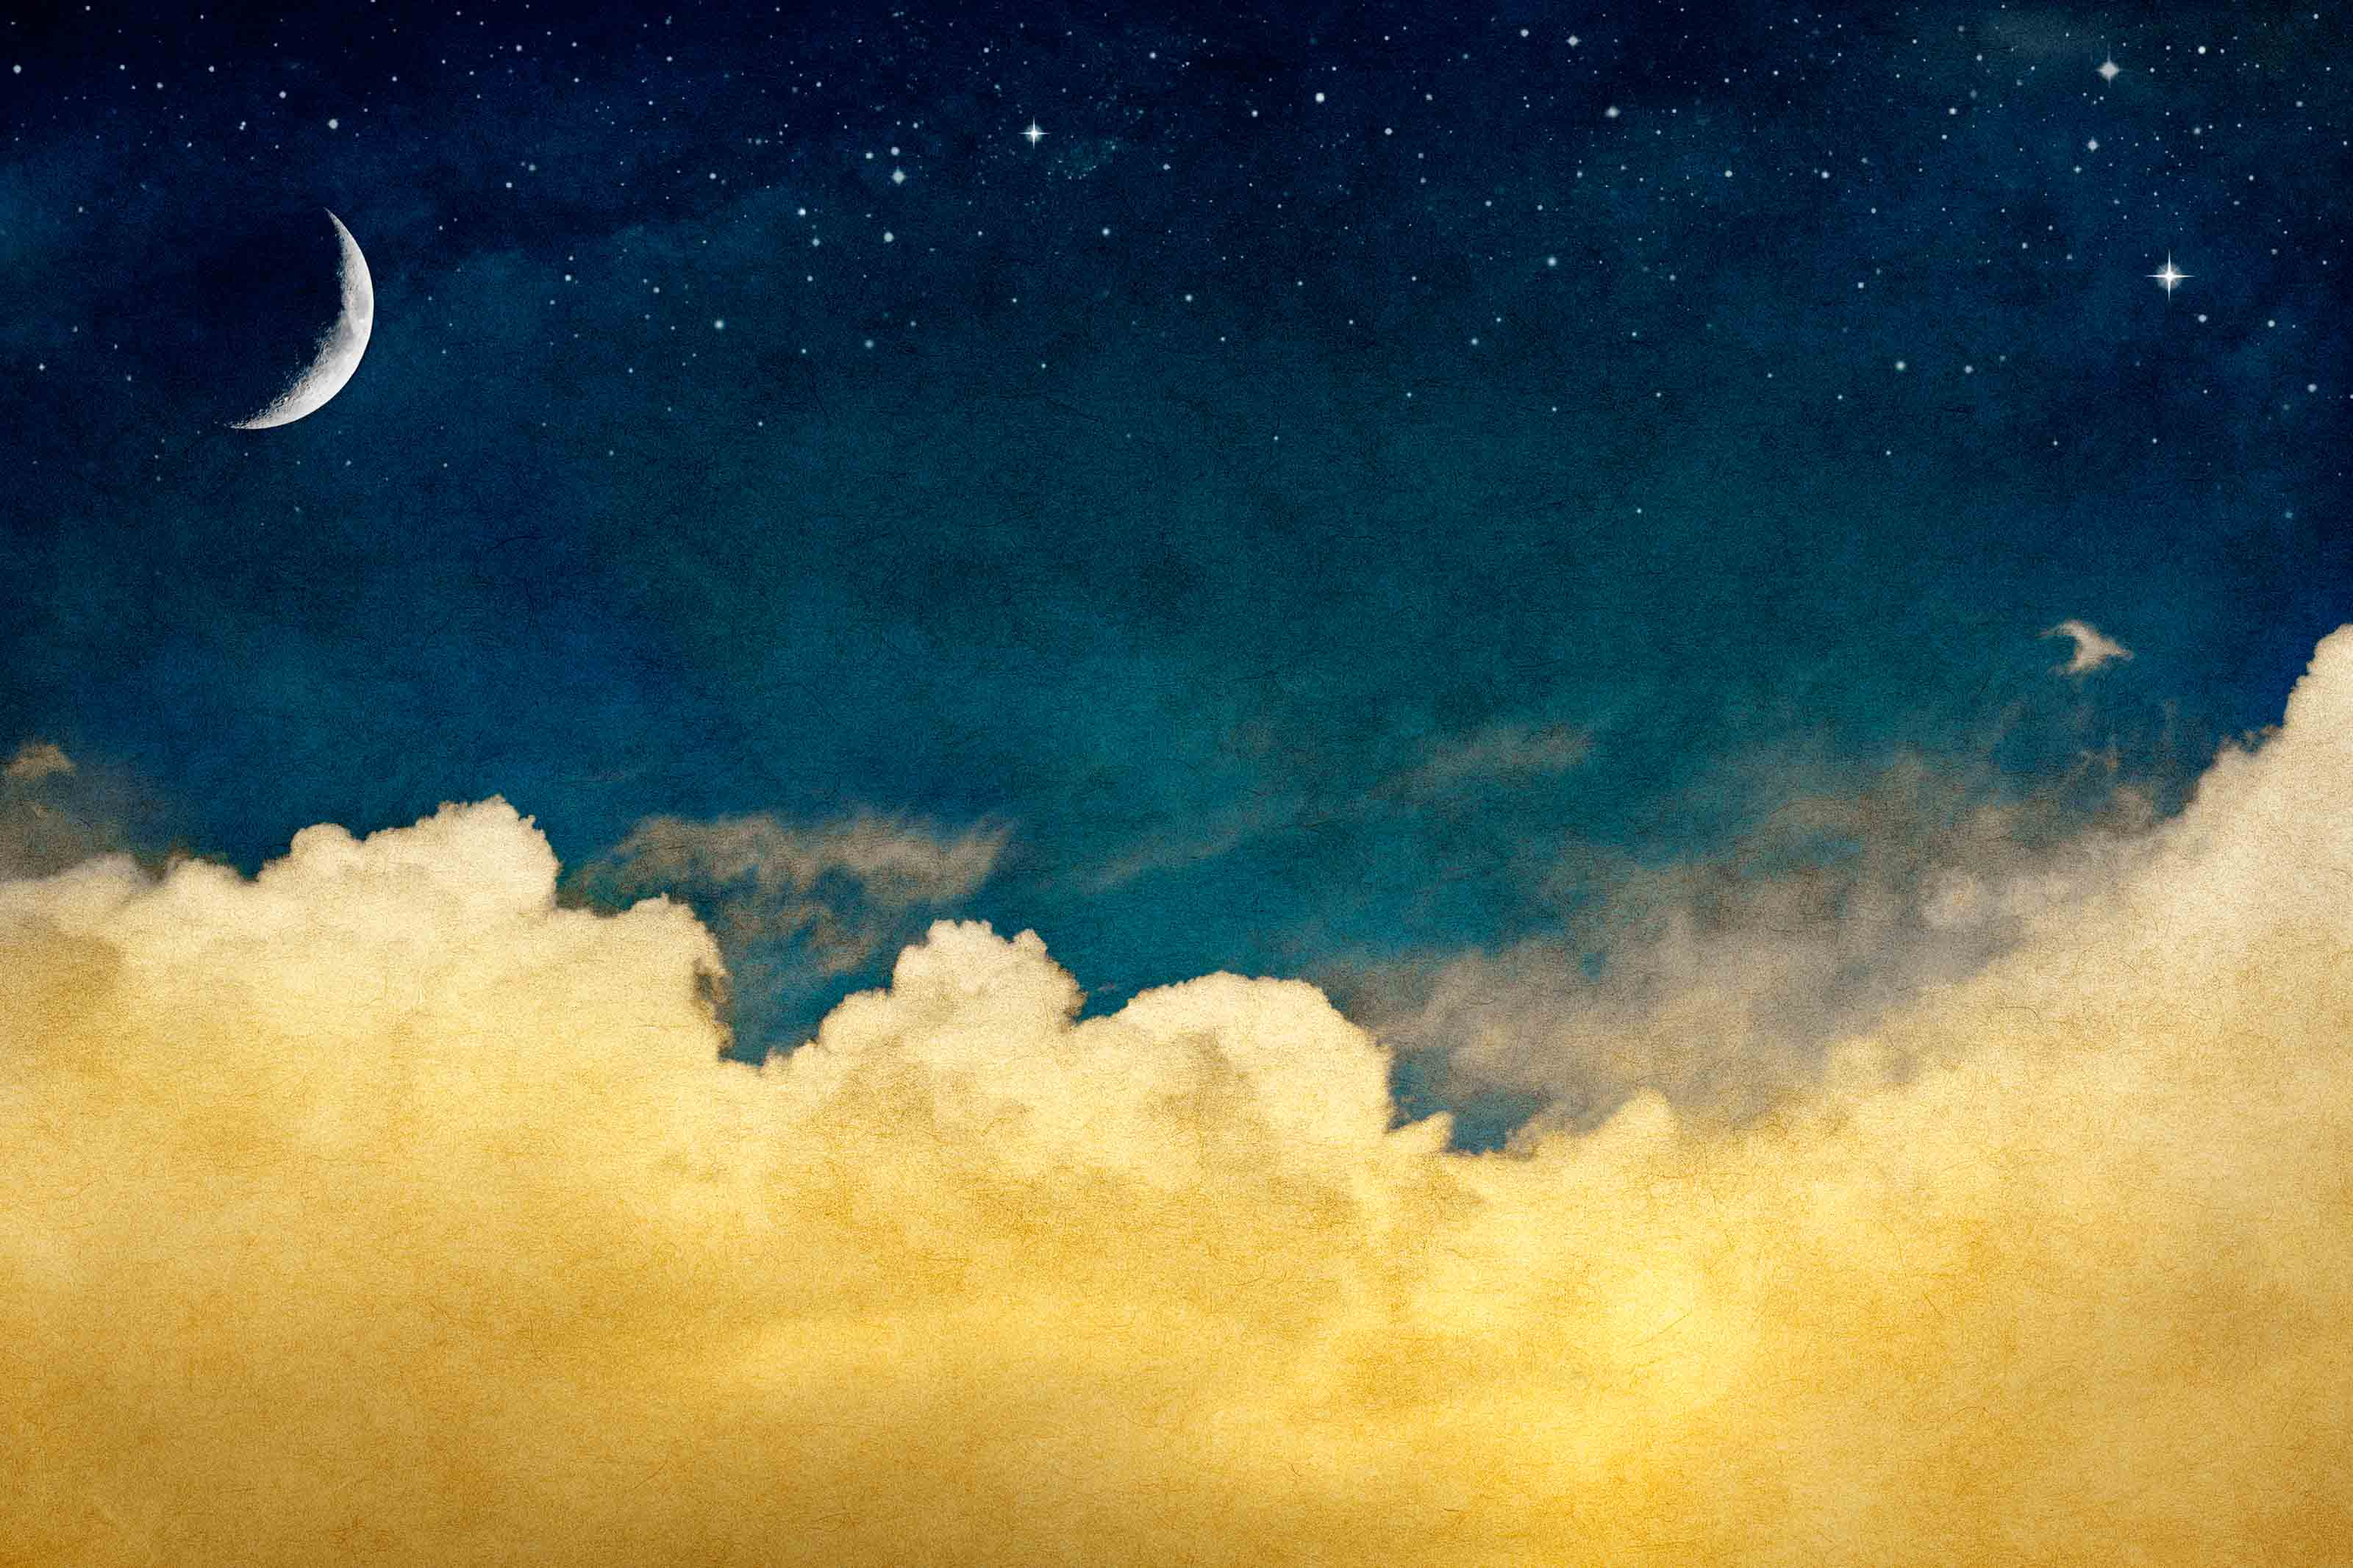 Delve into mindfulness for a better night's sleep